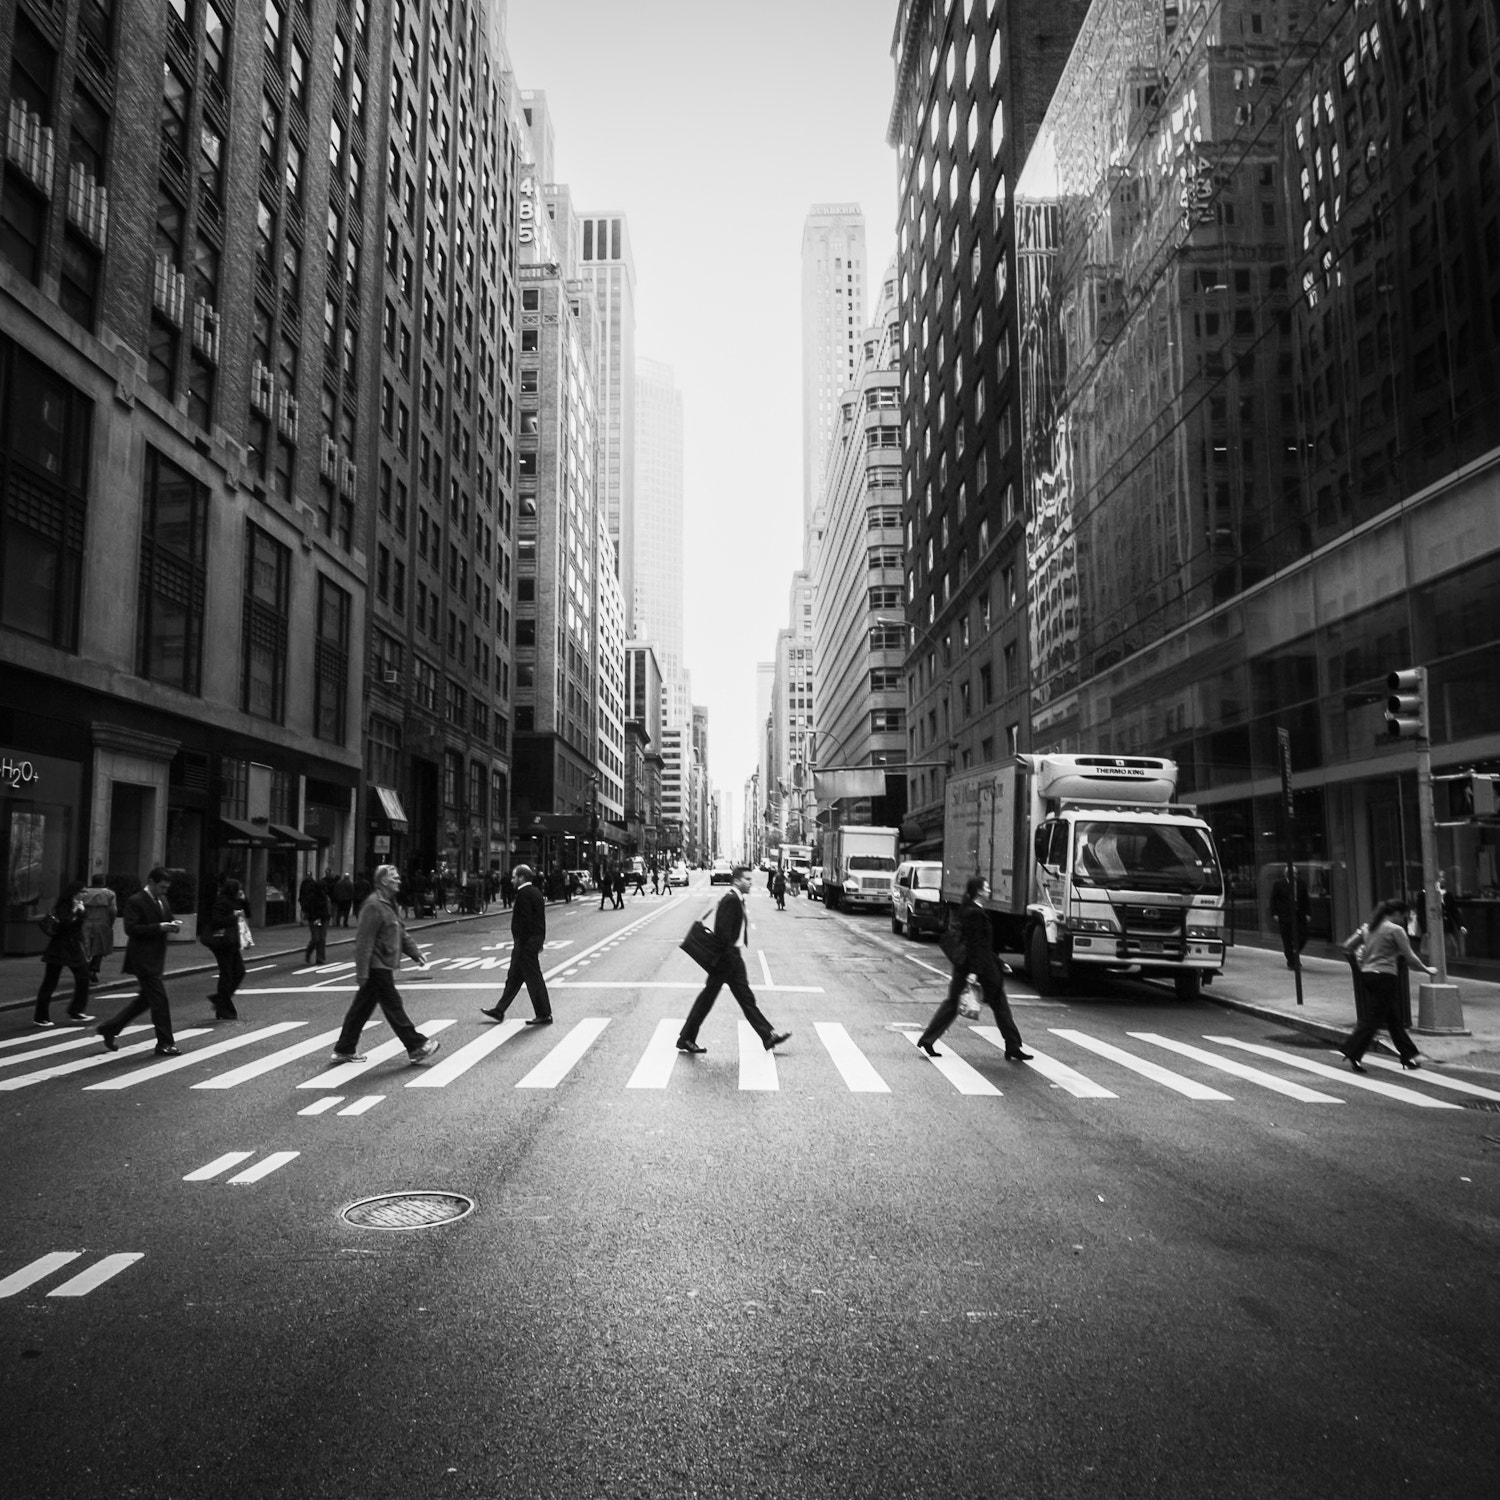 Photograph No Beatles by Tilman. Photography on 500px